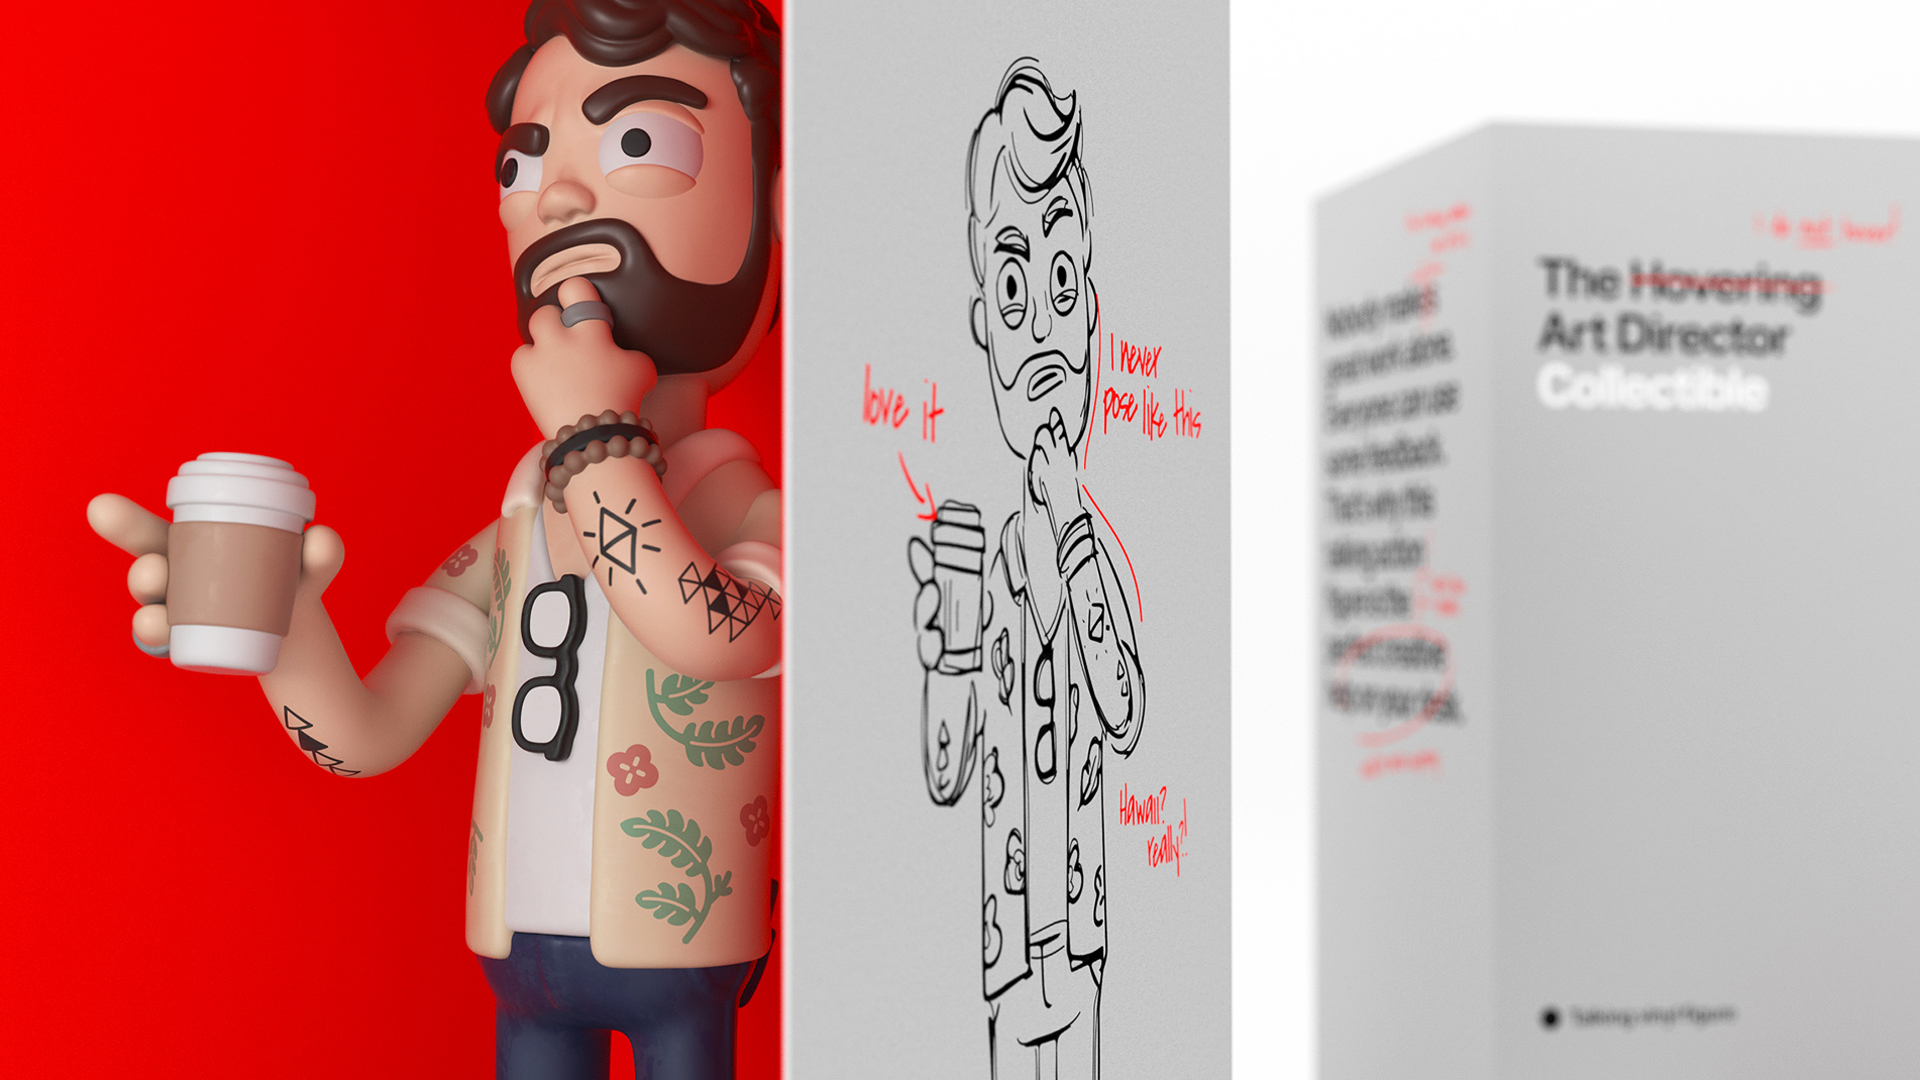 5MJP-–-Adobe-Stock-–-The-Hovering-Art-Director-Action-Figure